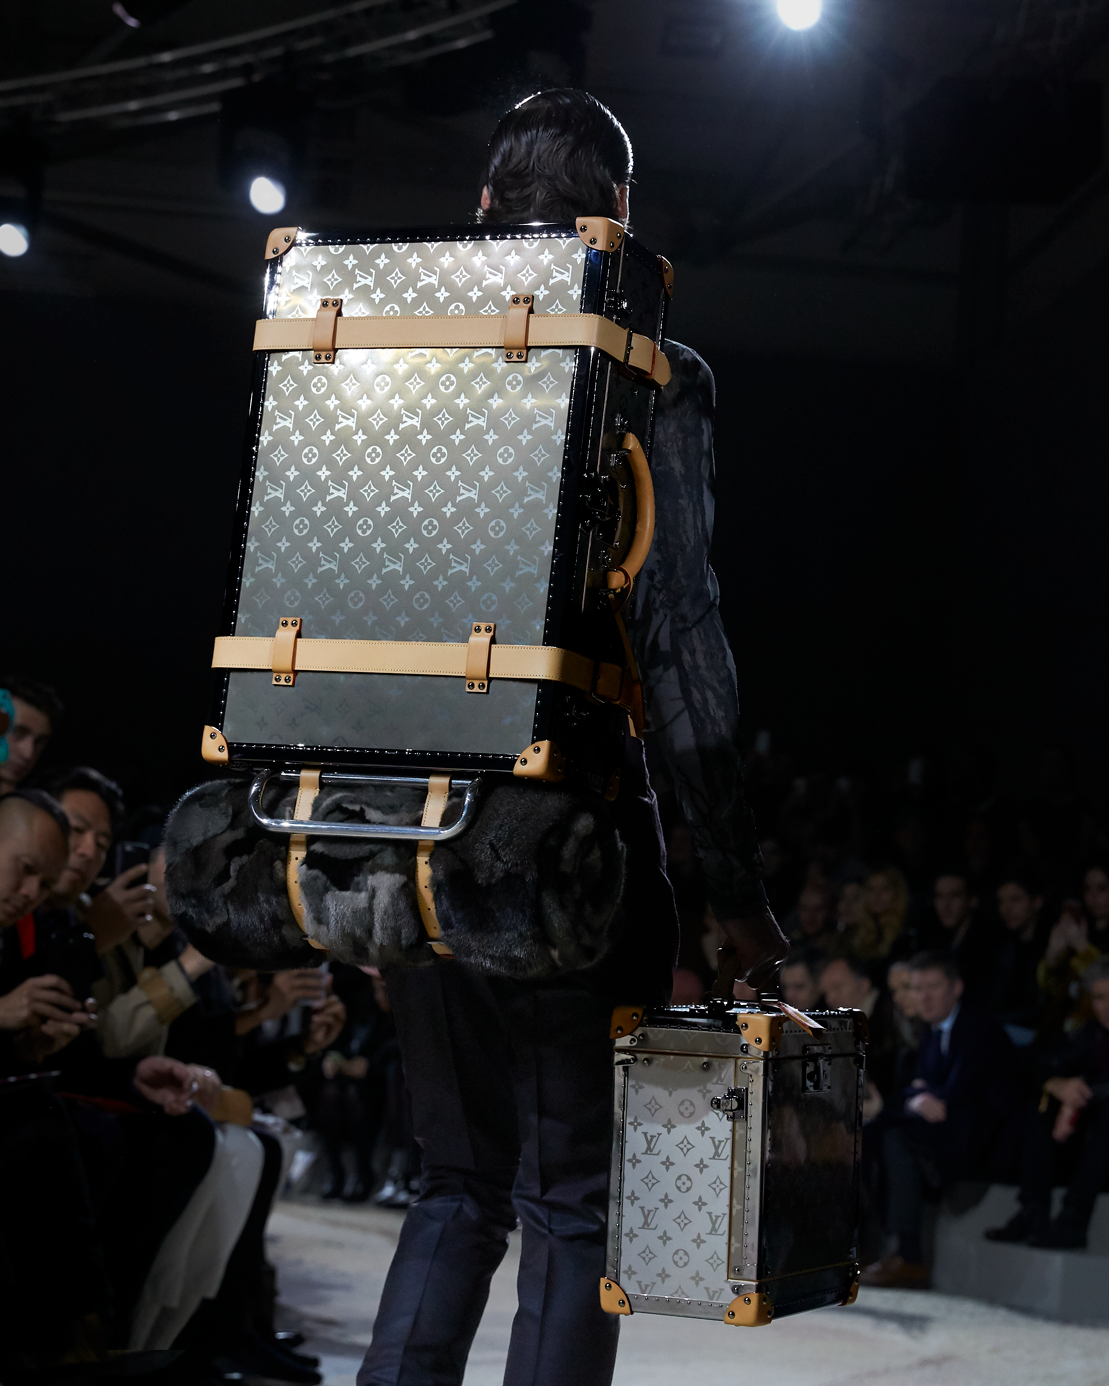 789d8c9737 Titanium sherpa trunk at the Louis Vuitton Fall-Winter 2018 Fashion Show by  Kim Jones. See all the looks now at louisvuitton.com.